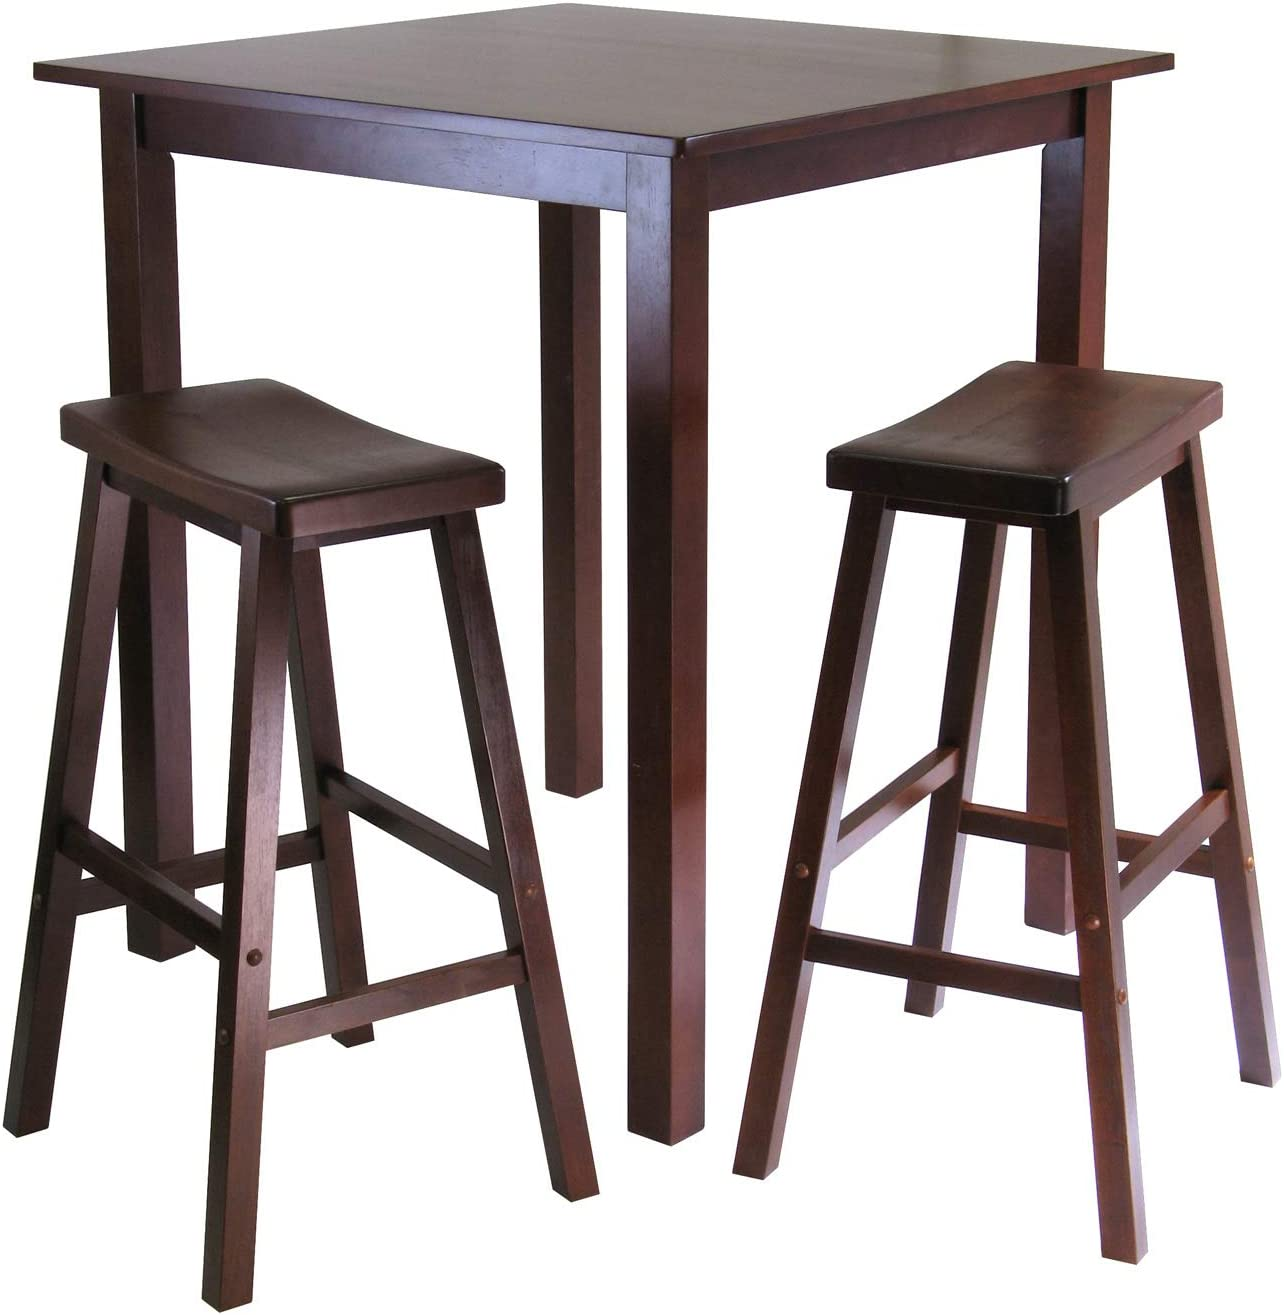 Winsome Parking 3-pc Weekly update Pub Walnut Dining Set latest Table